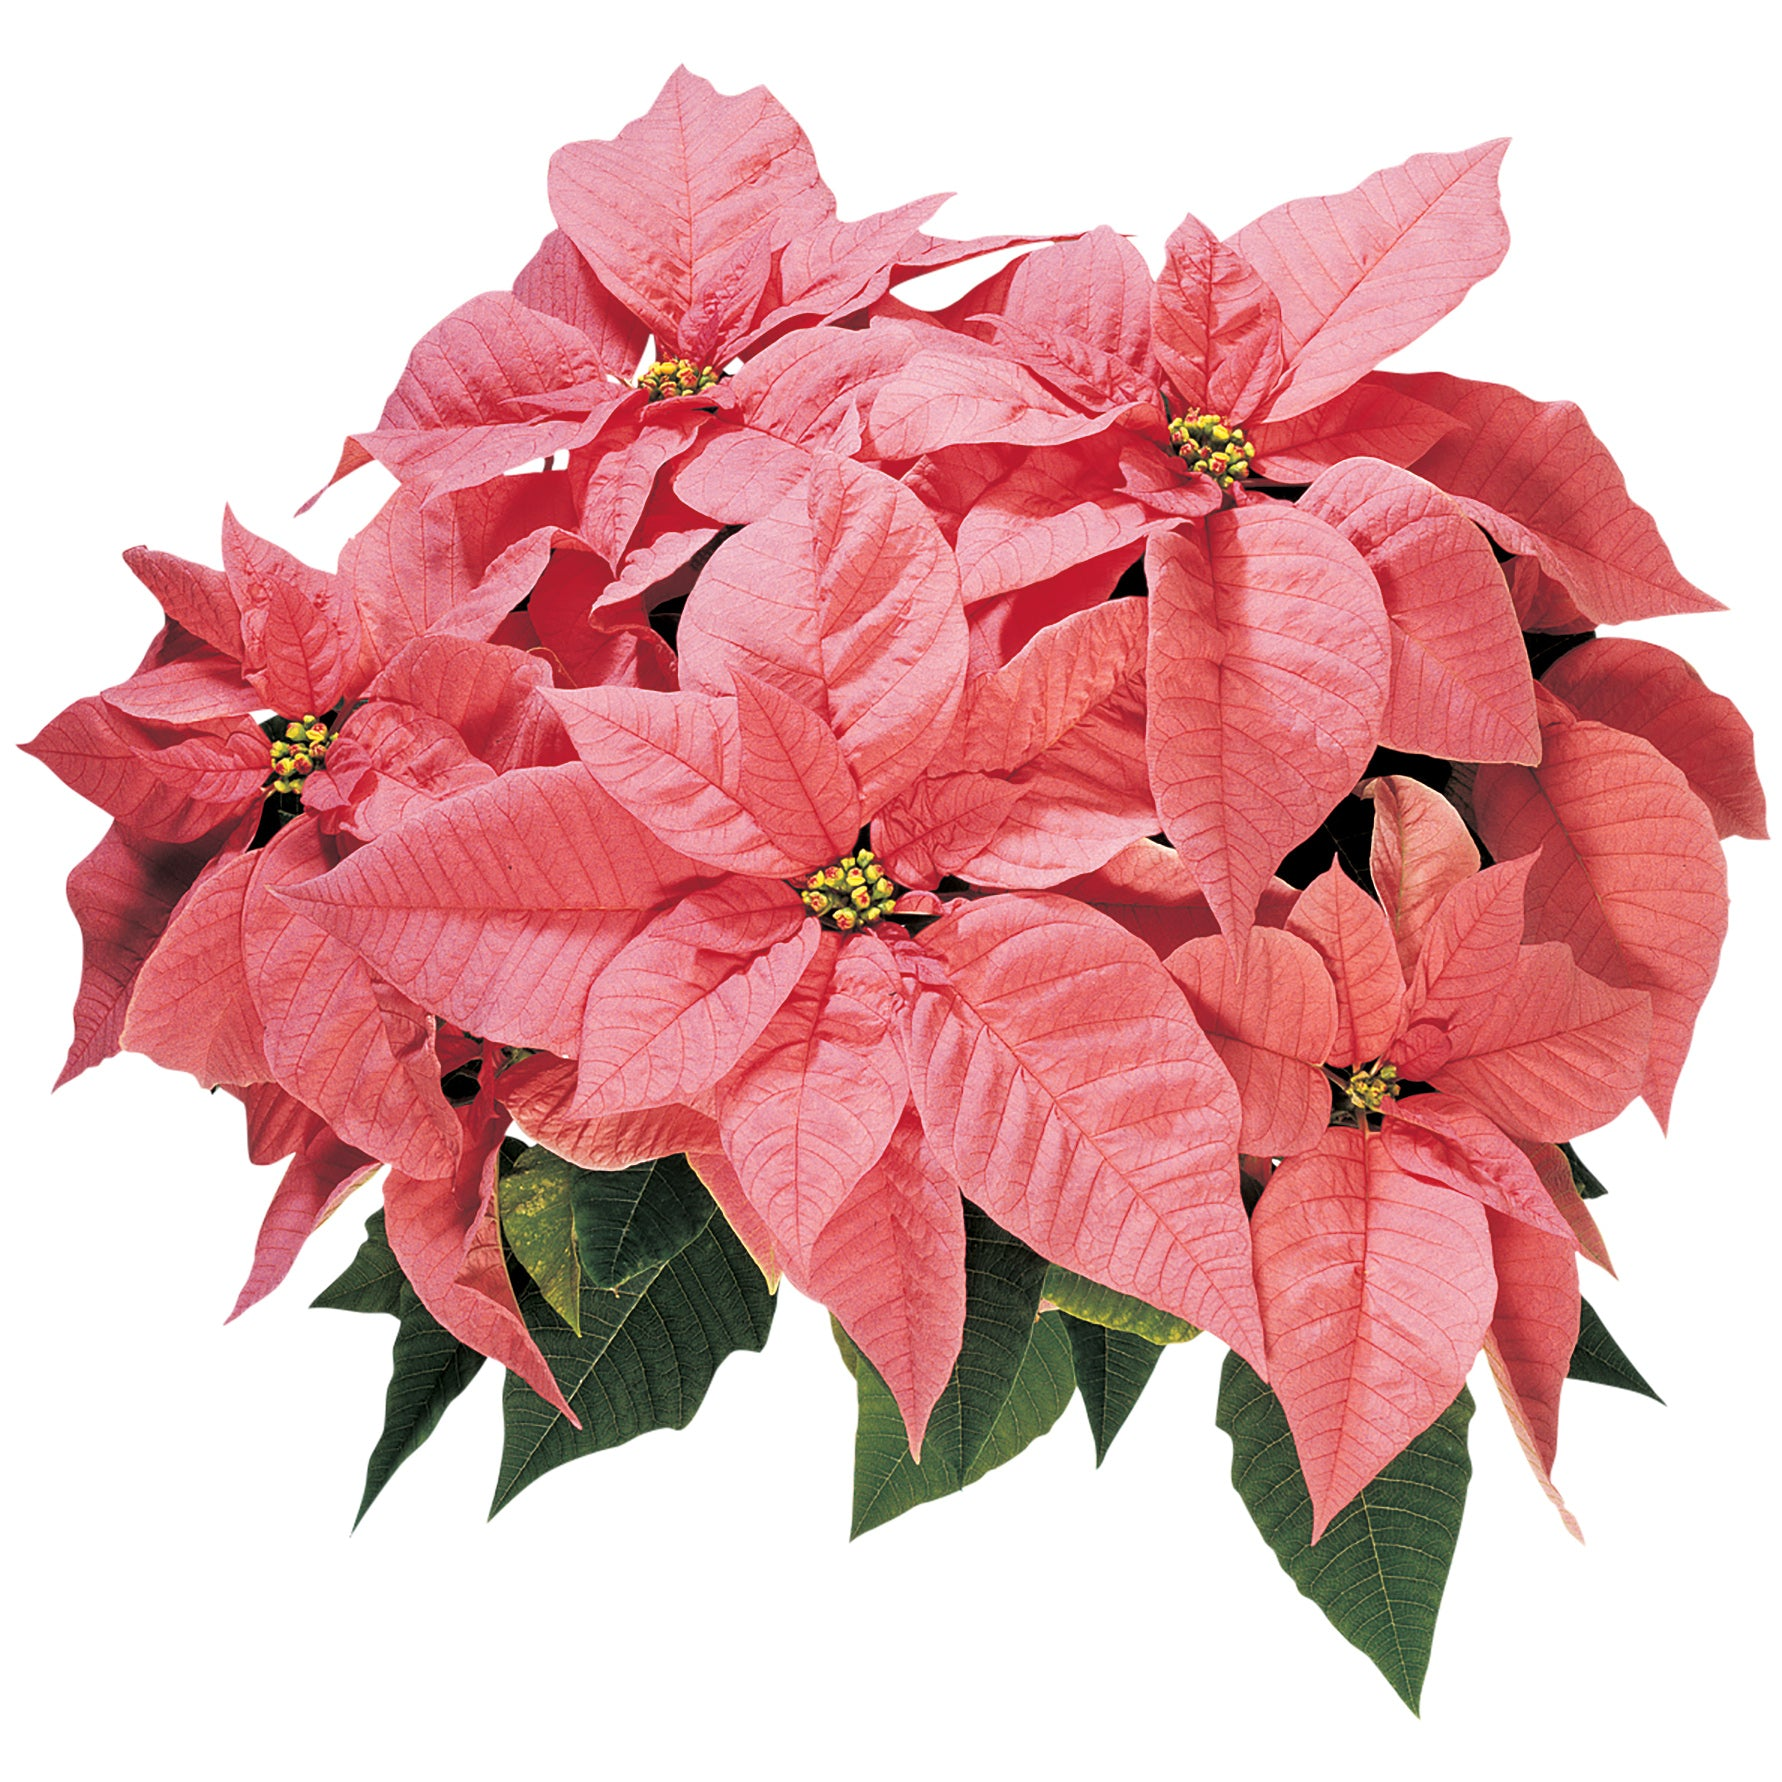 Maren Pink Poinsettia Christmas Holiday Flower